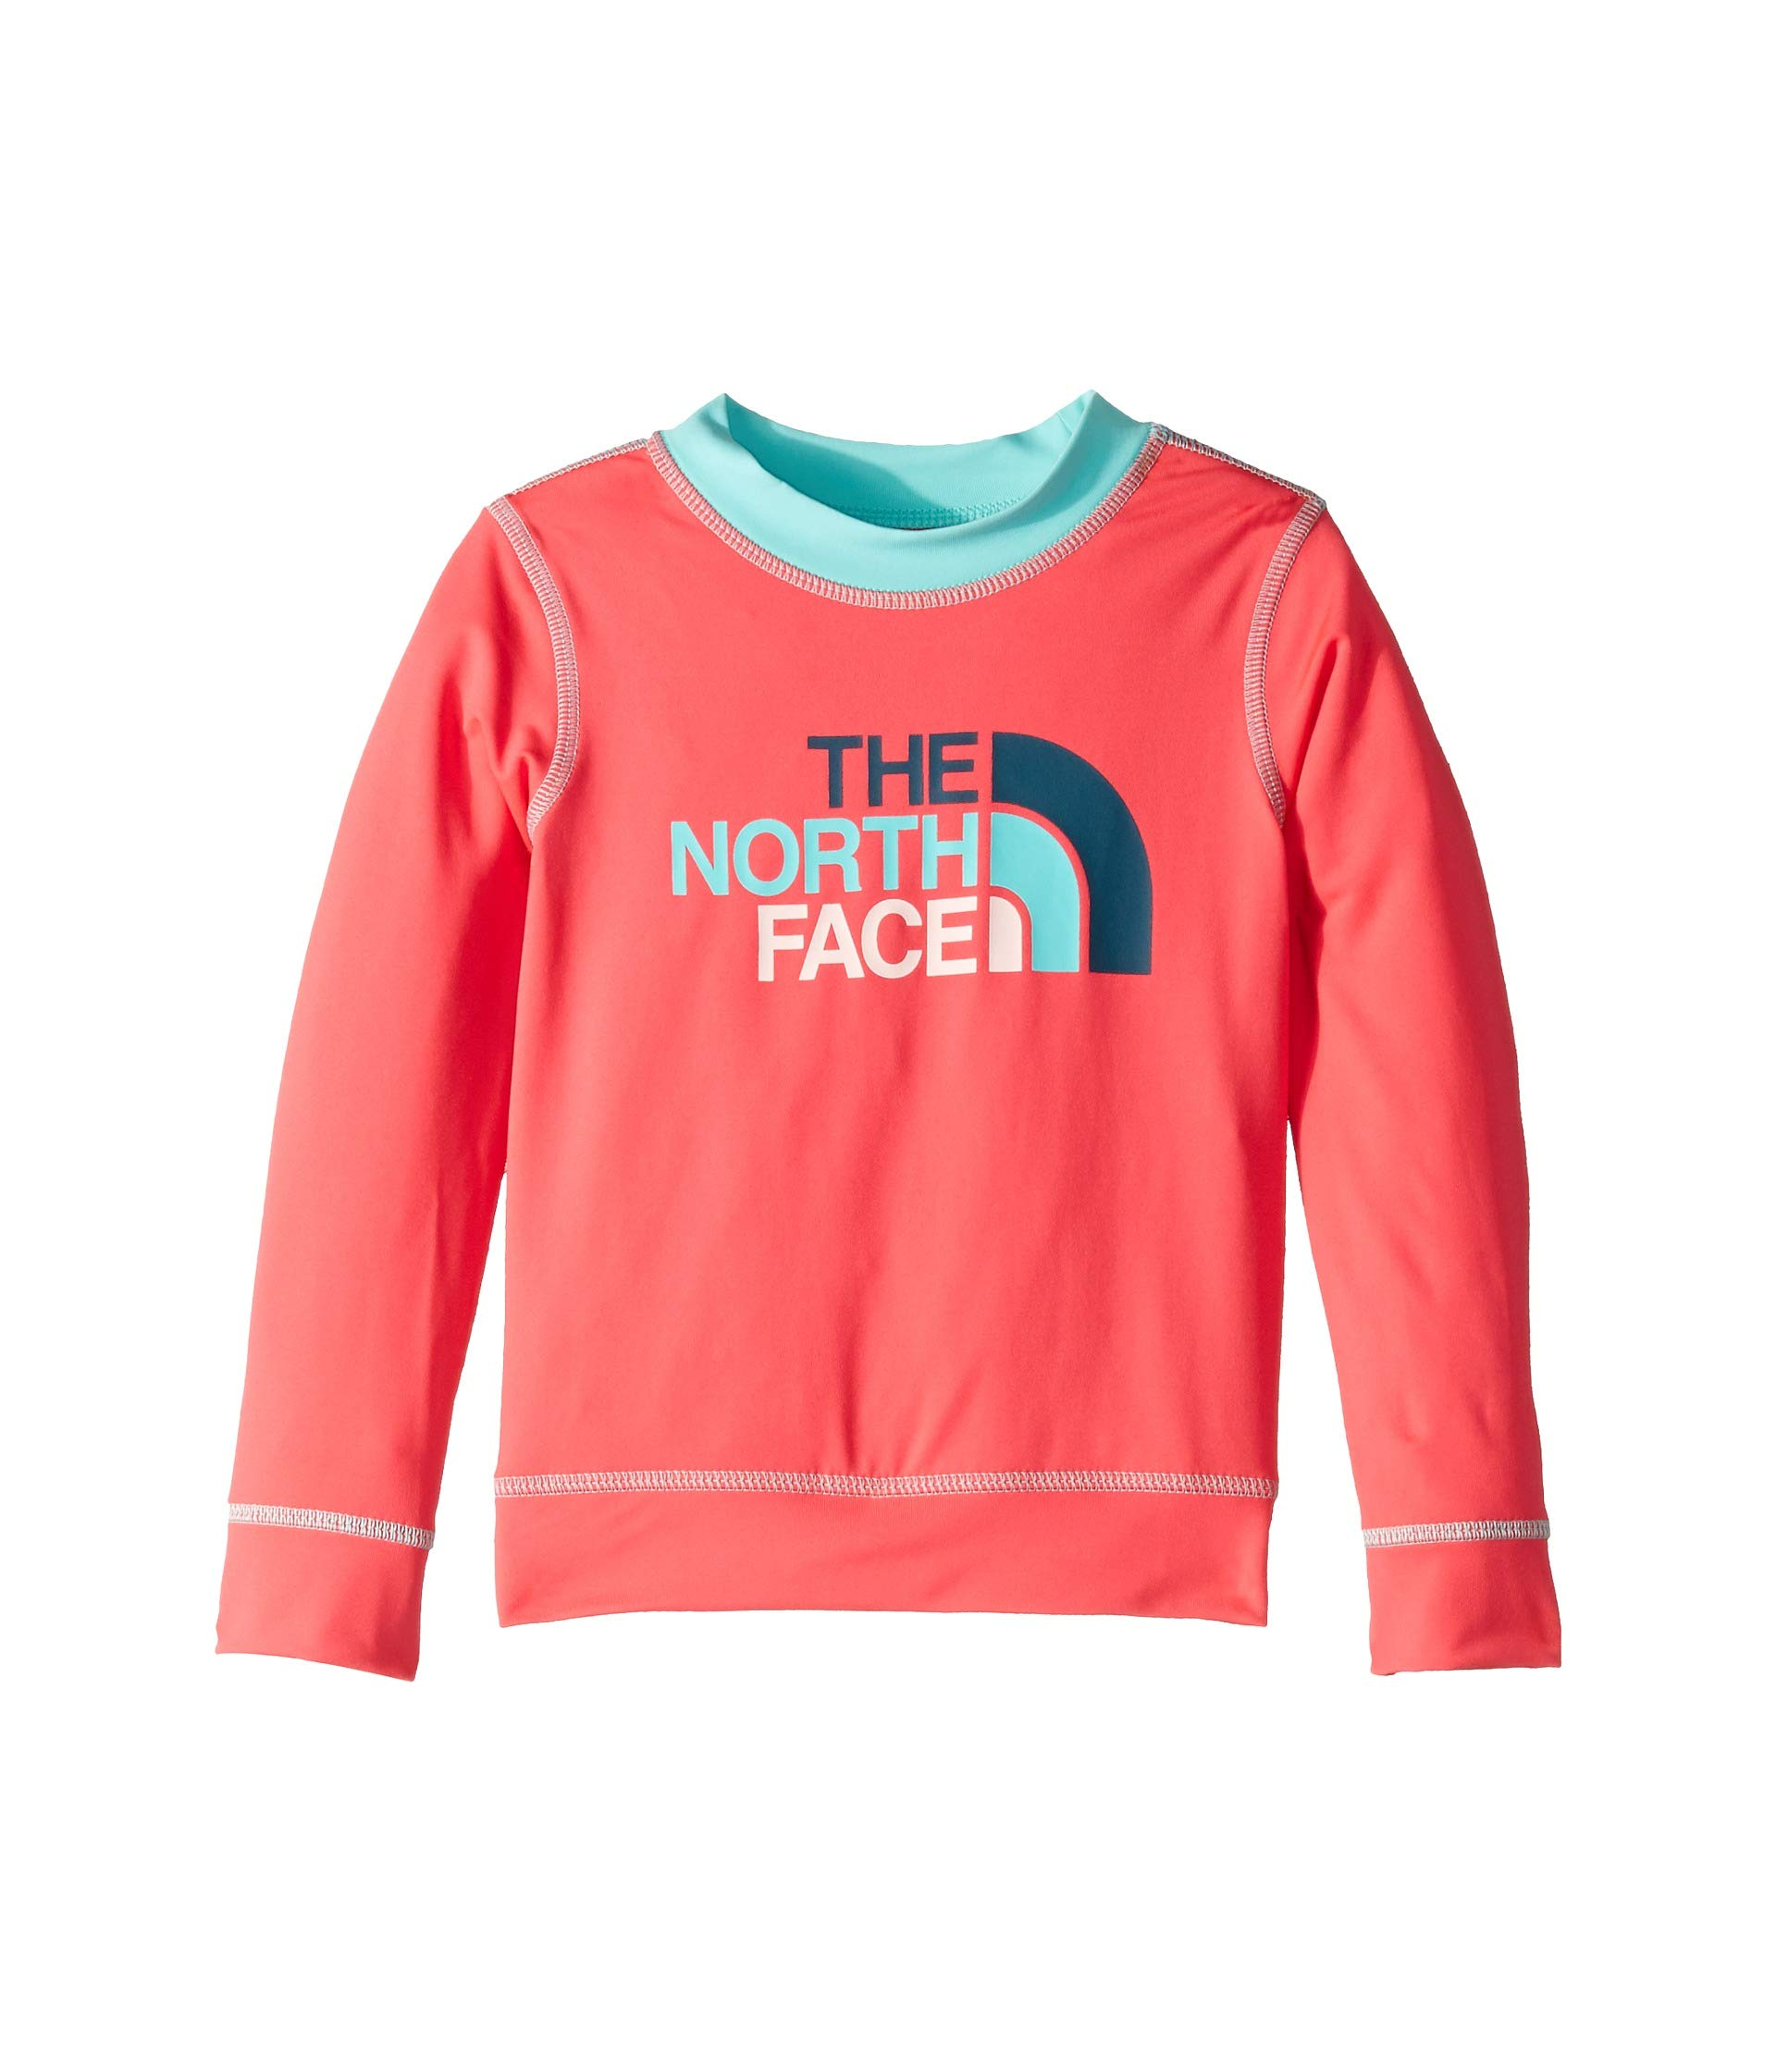 The North Face Toddler Long Sleeve Hike/Water Tee, Atomic Pink, Size 2T by The North Face